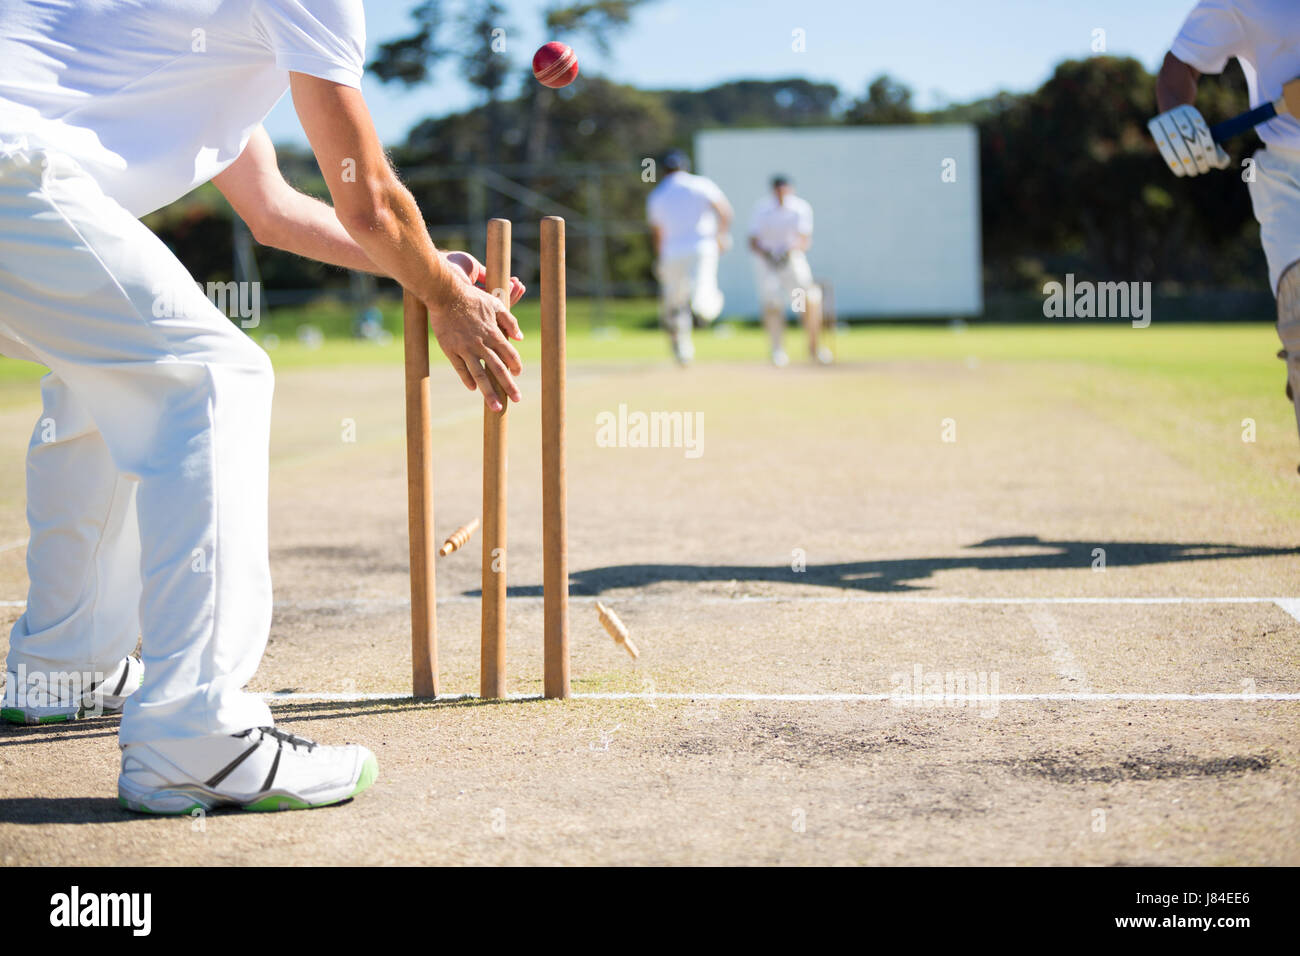 Wicket keeper hitting stumps during match on sunny day - Stock Image